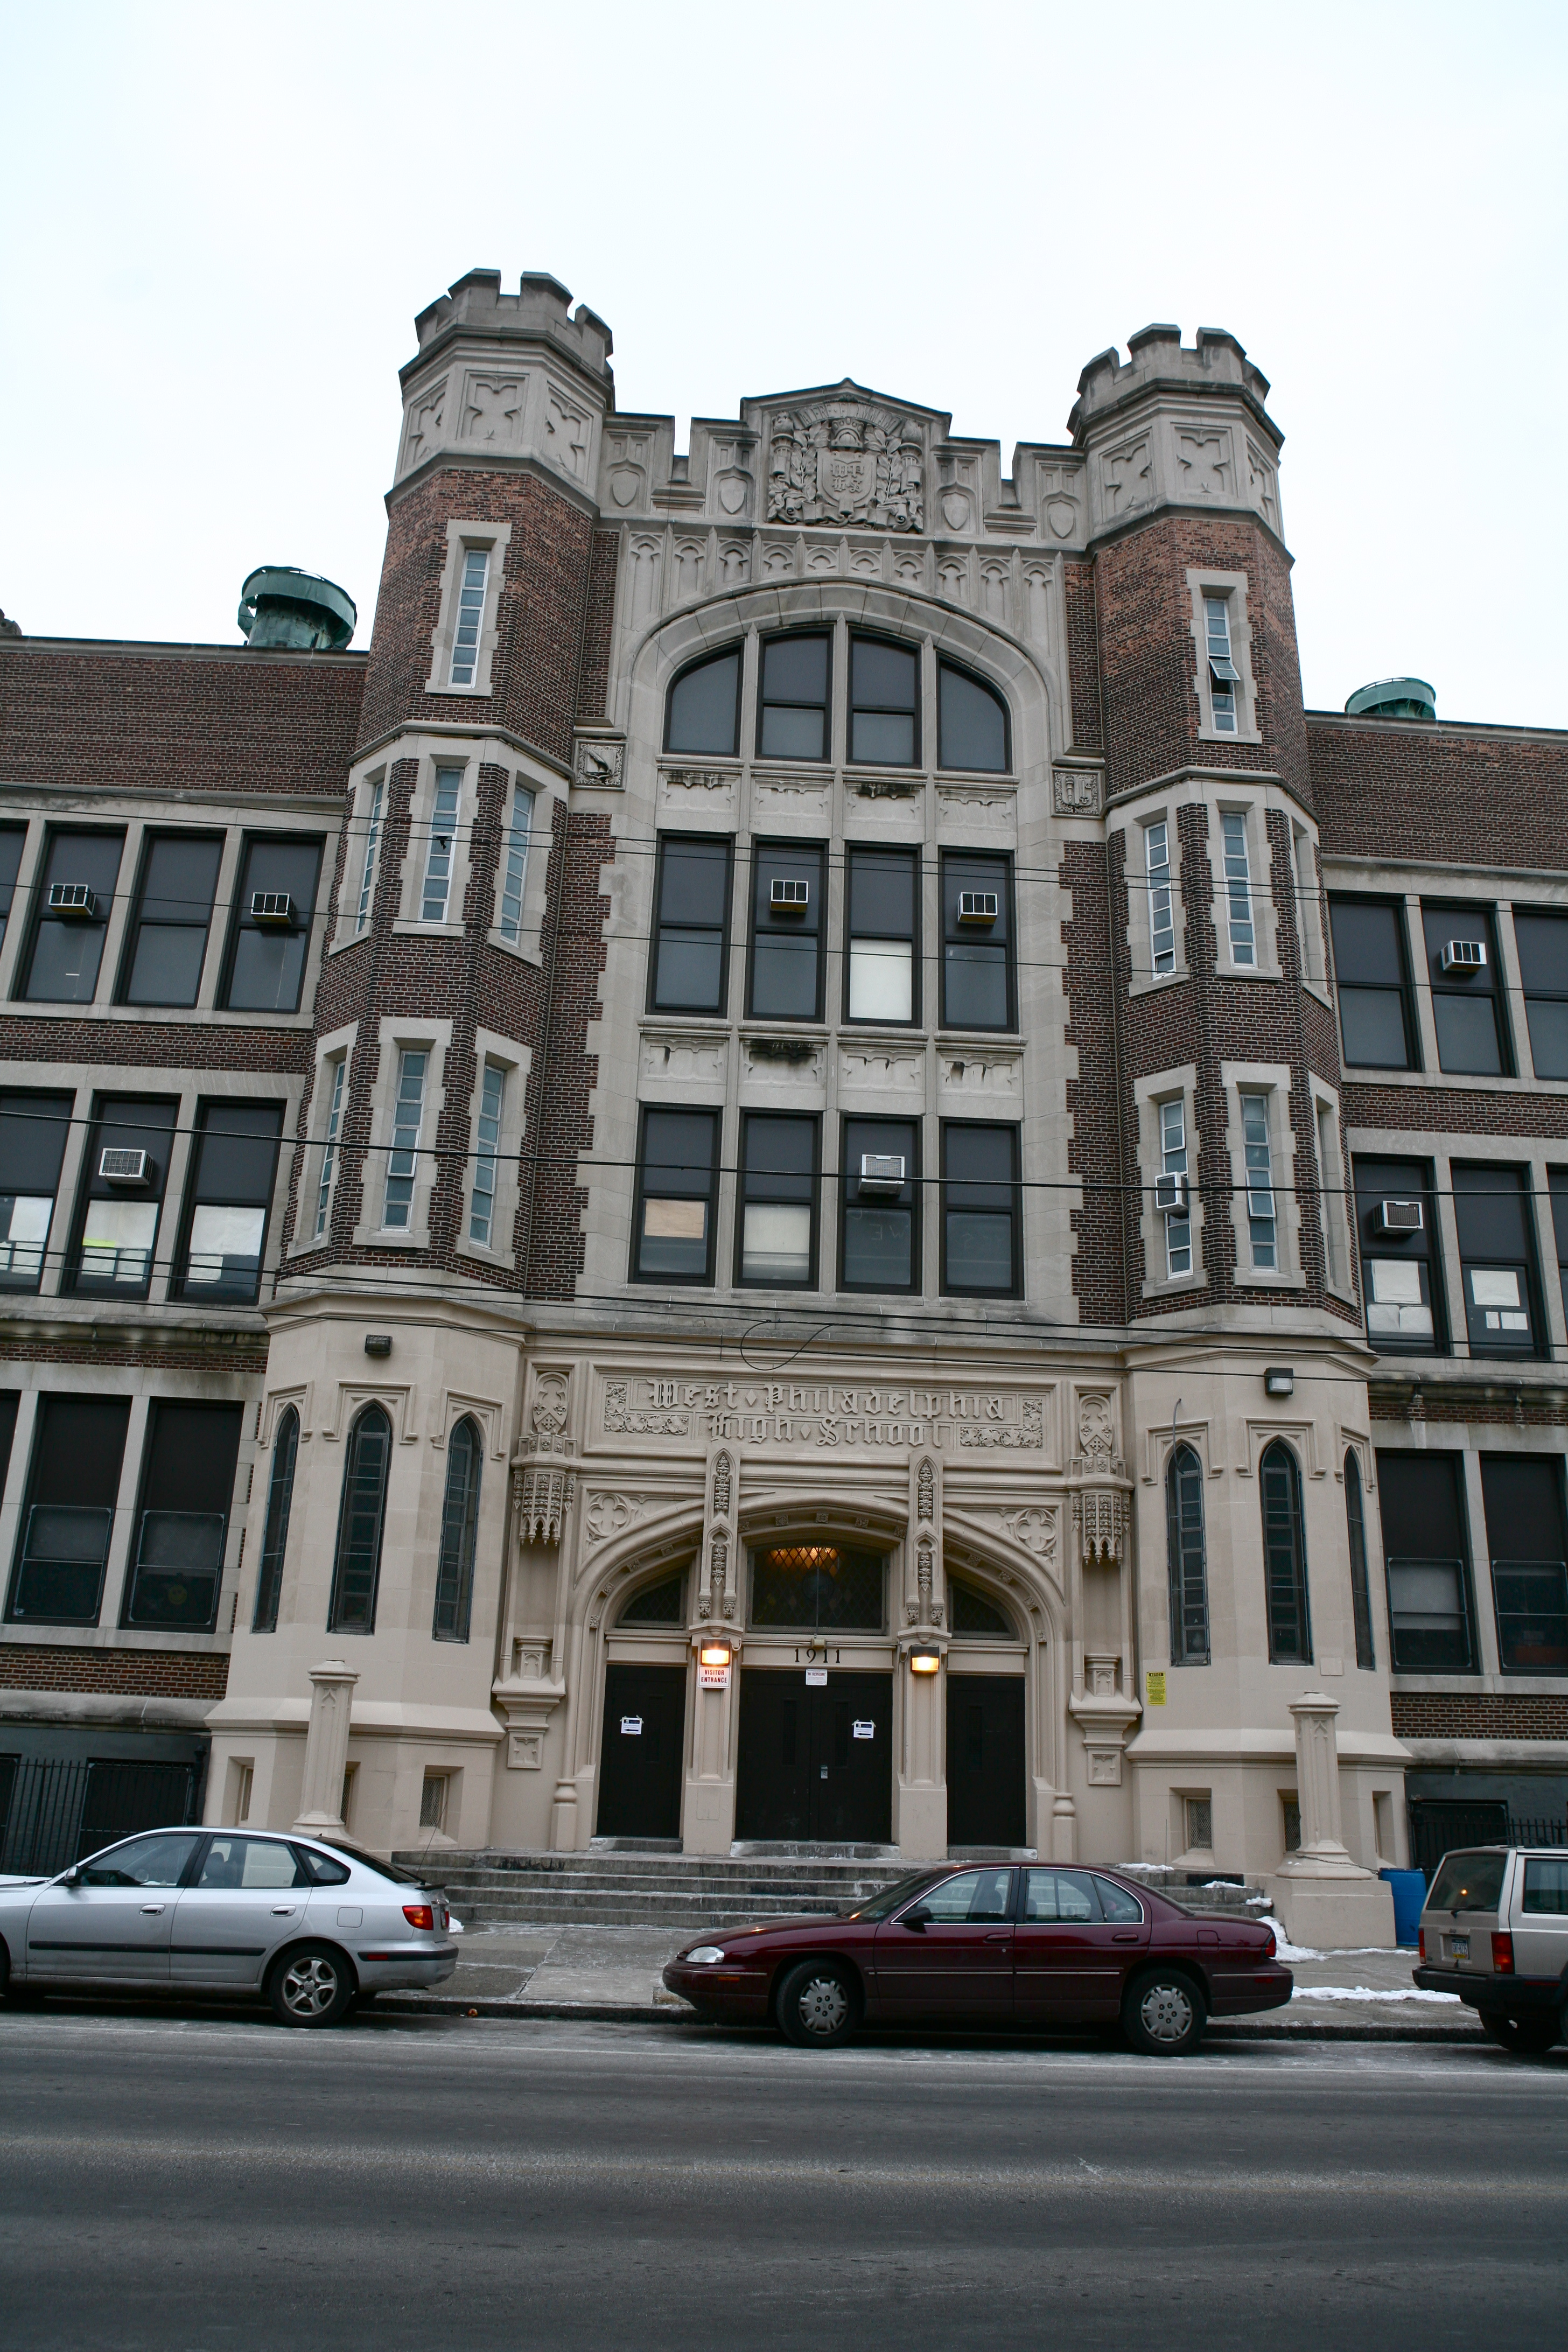 West Philadelphia High School, a five-story, brick and limestone structure built in 1911-1912 at a cost of $1.3 million.